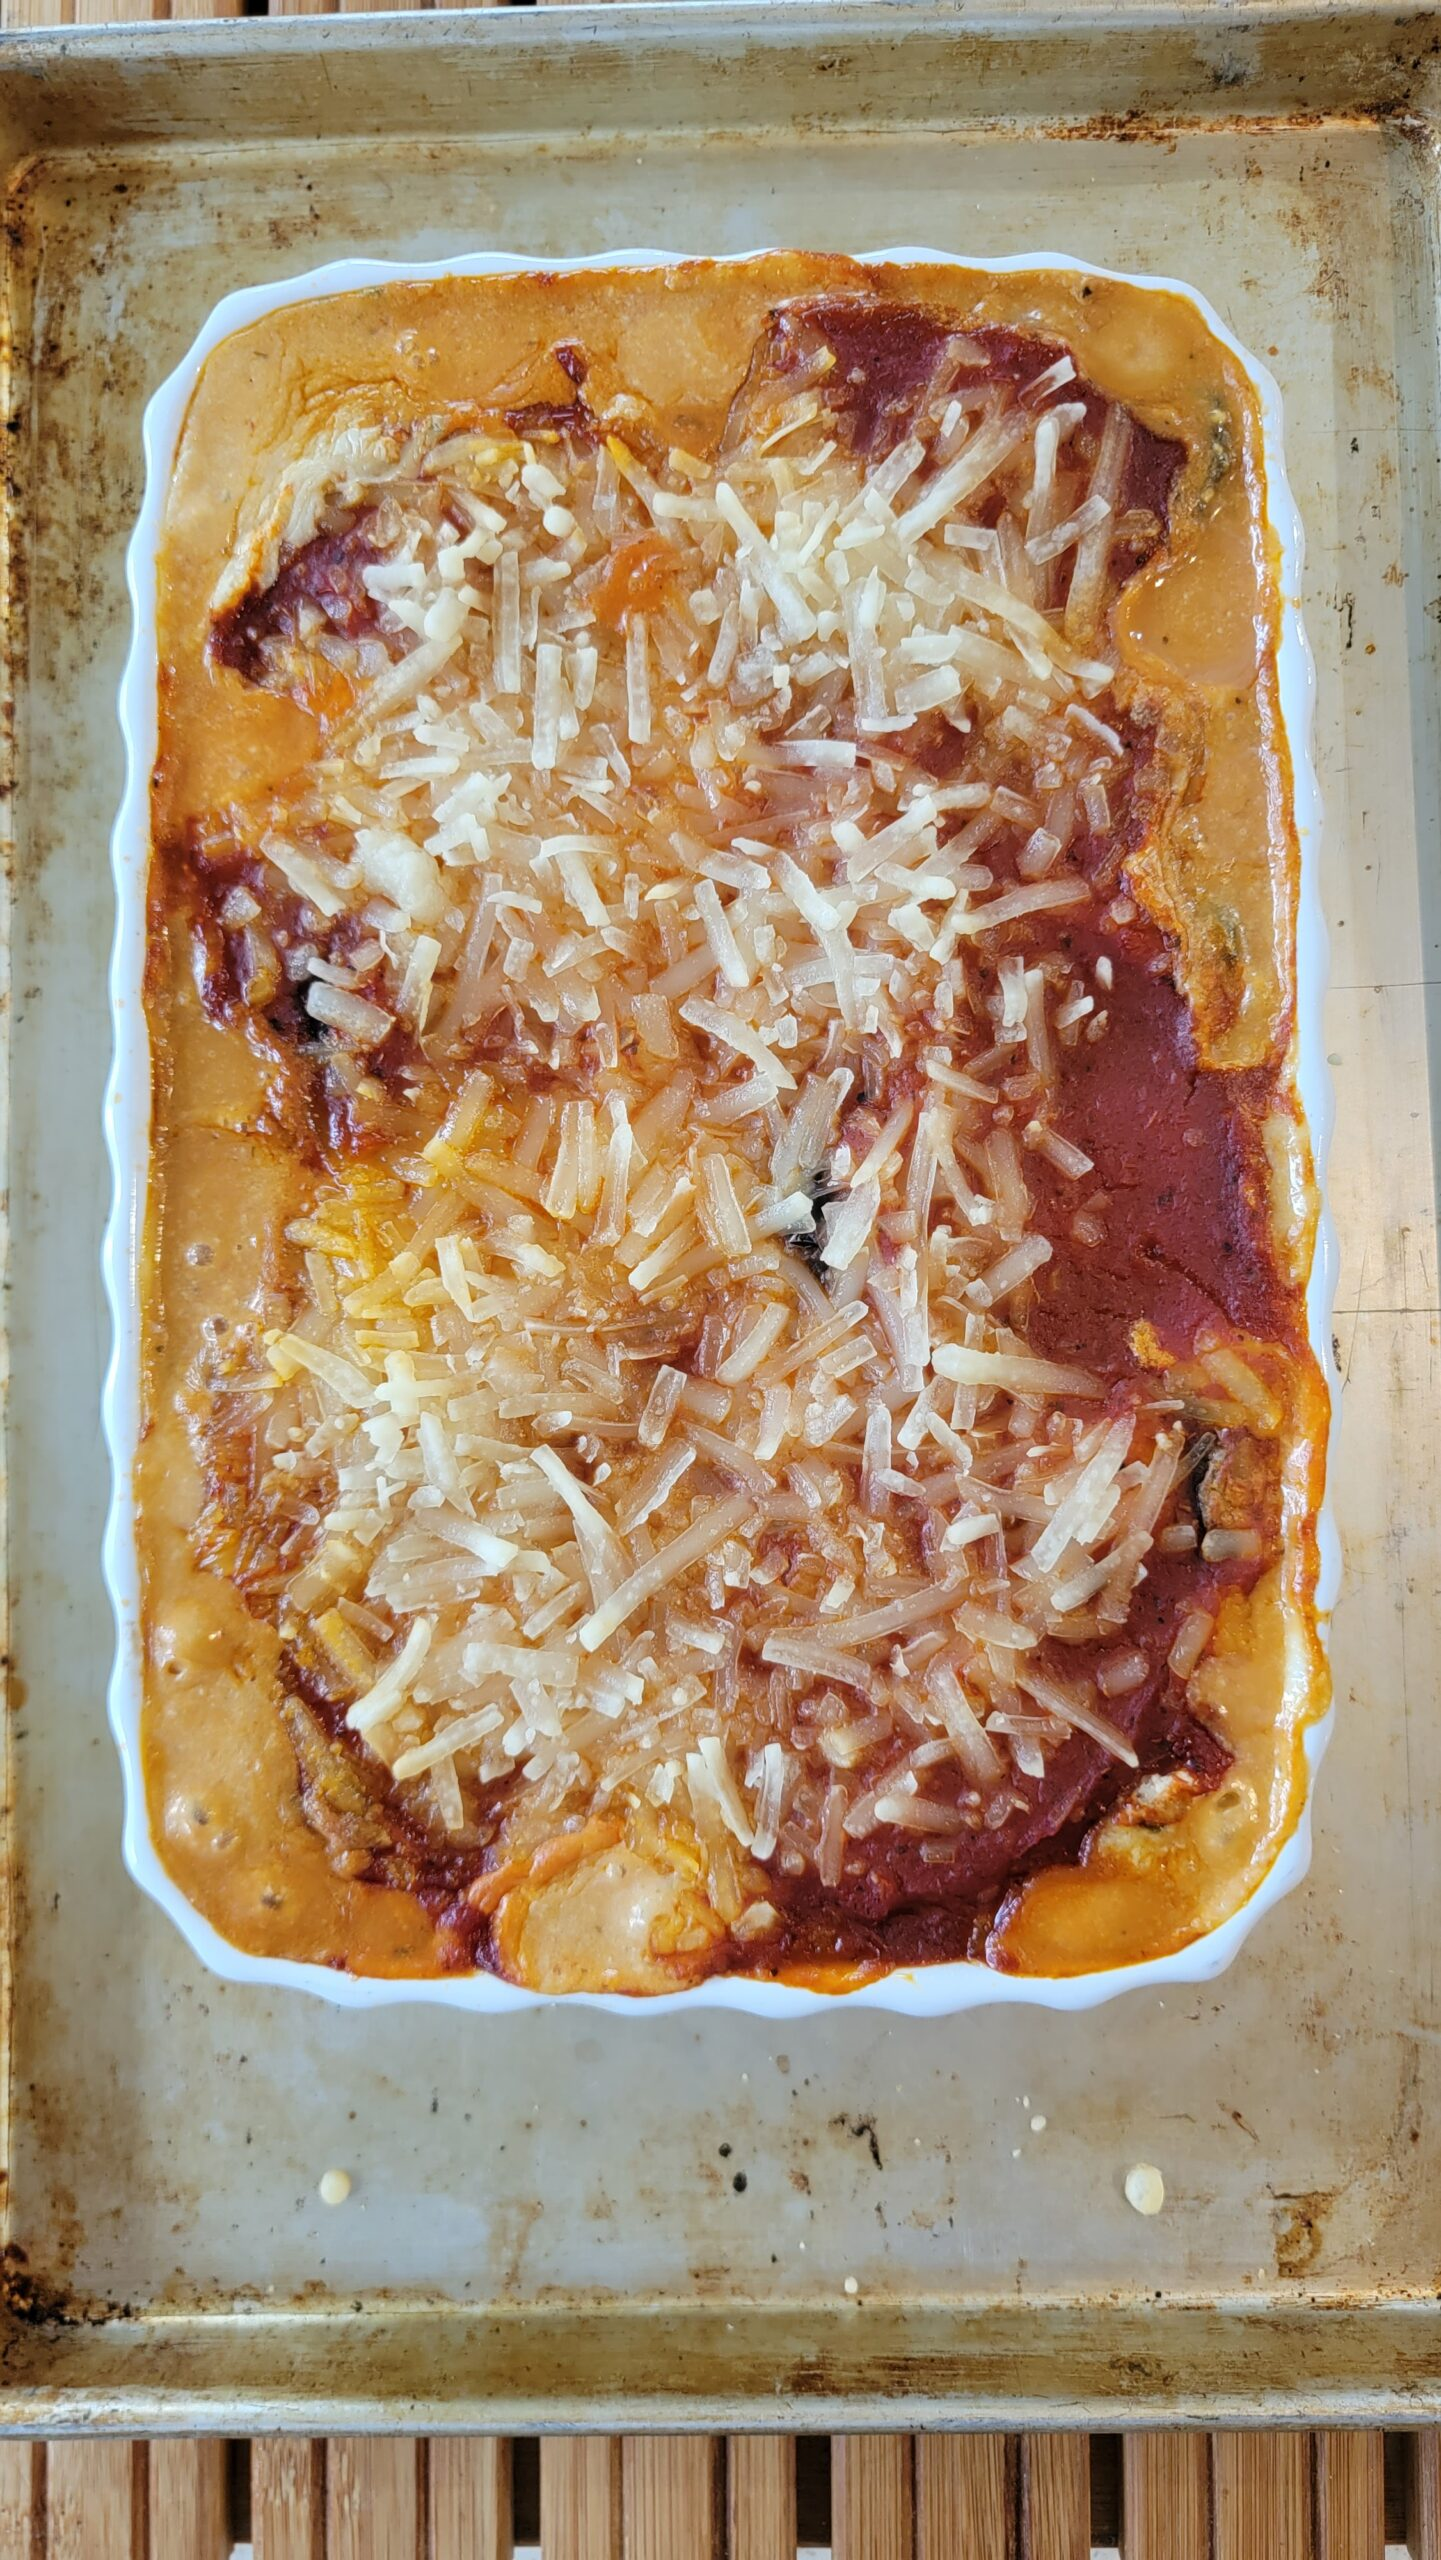 A pan of Three Cheese Eggplant Rolls